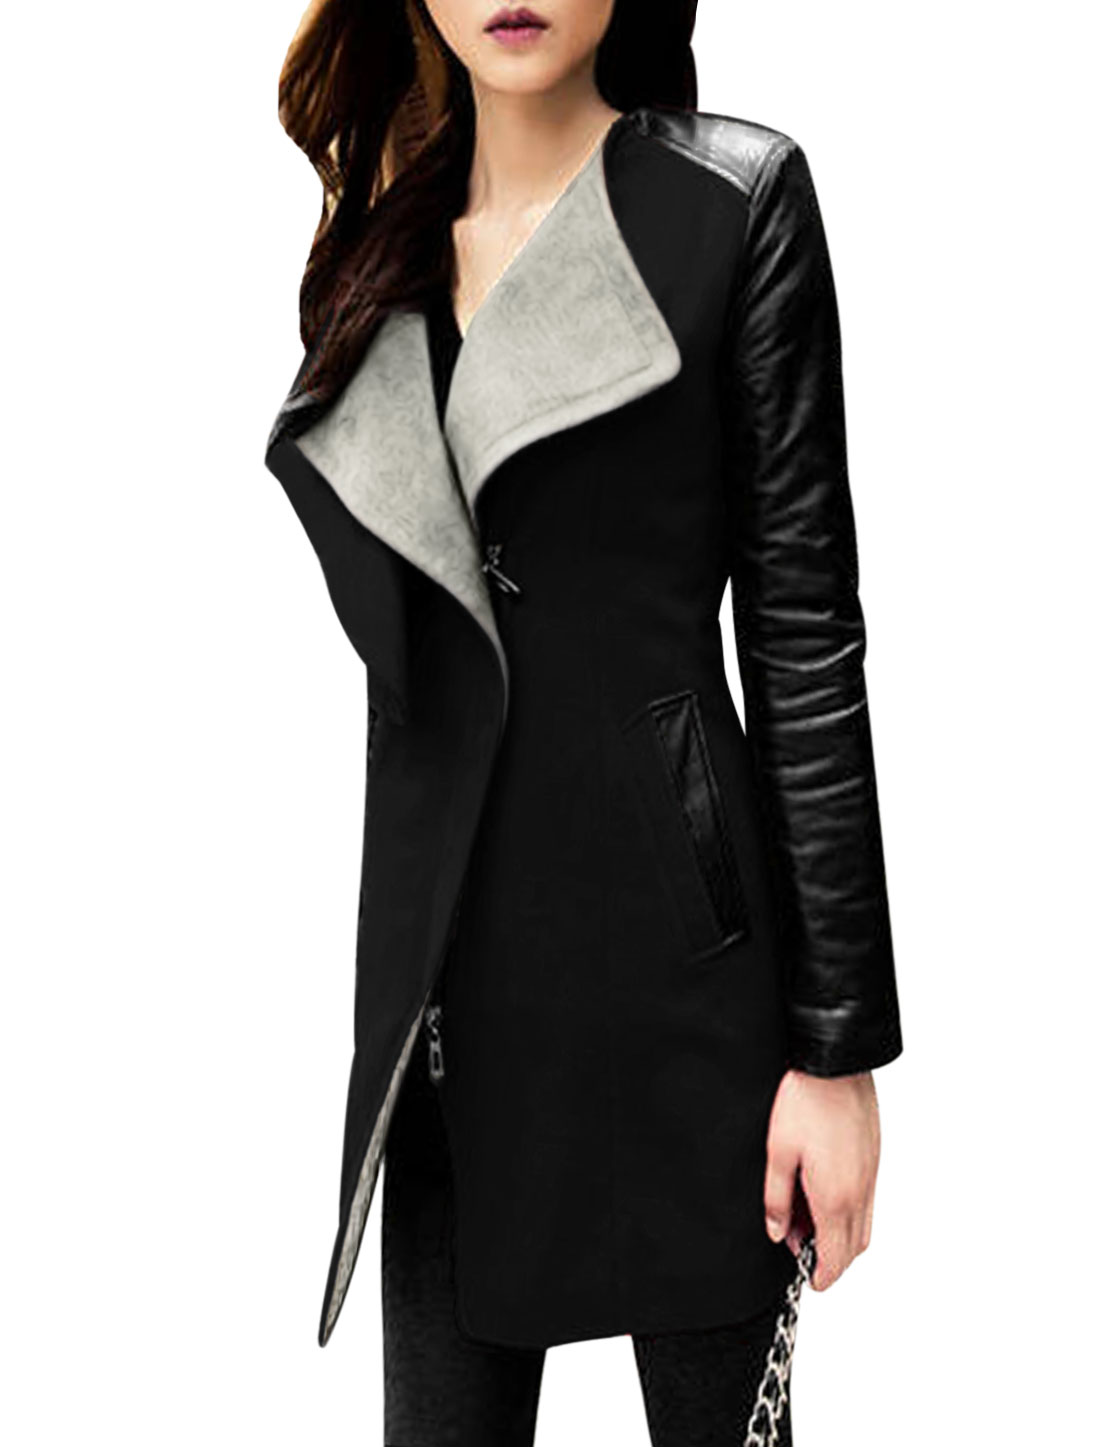 Lady Two Layer Collar Zip Up Fashion Casual Worsted Coat Black S